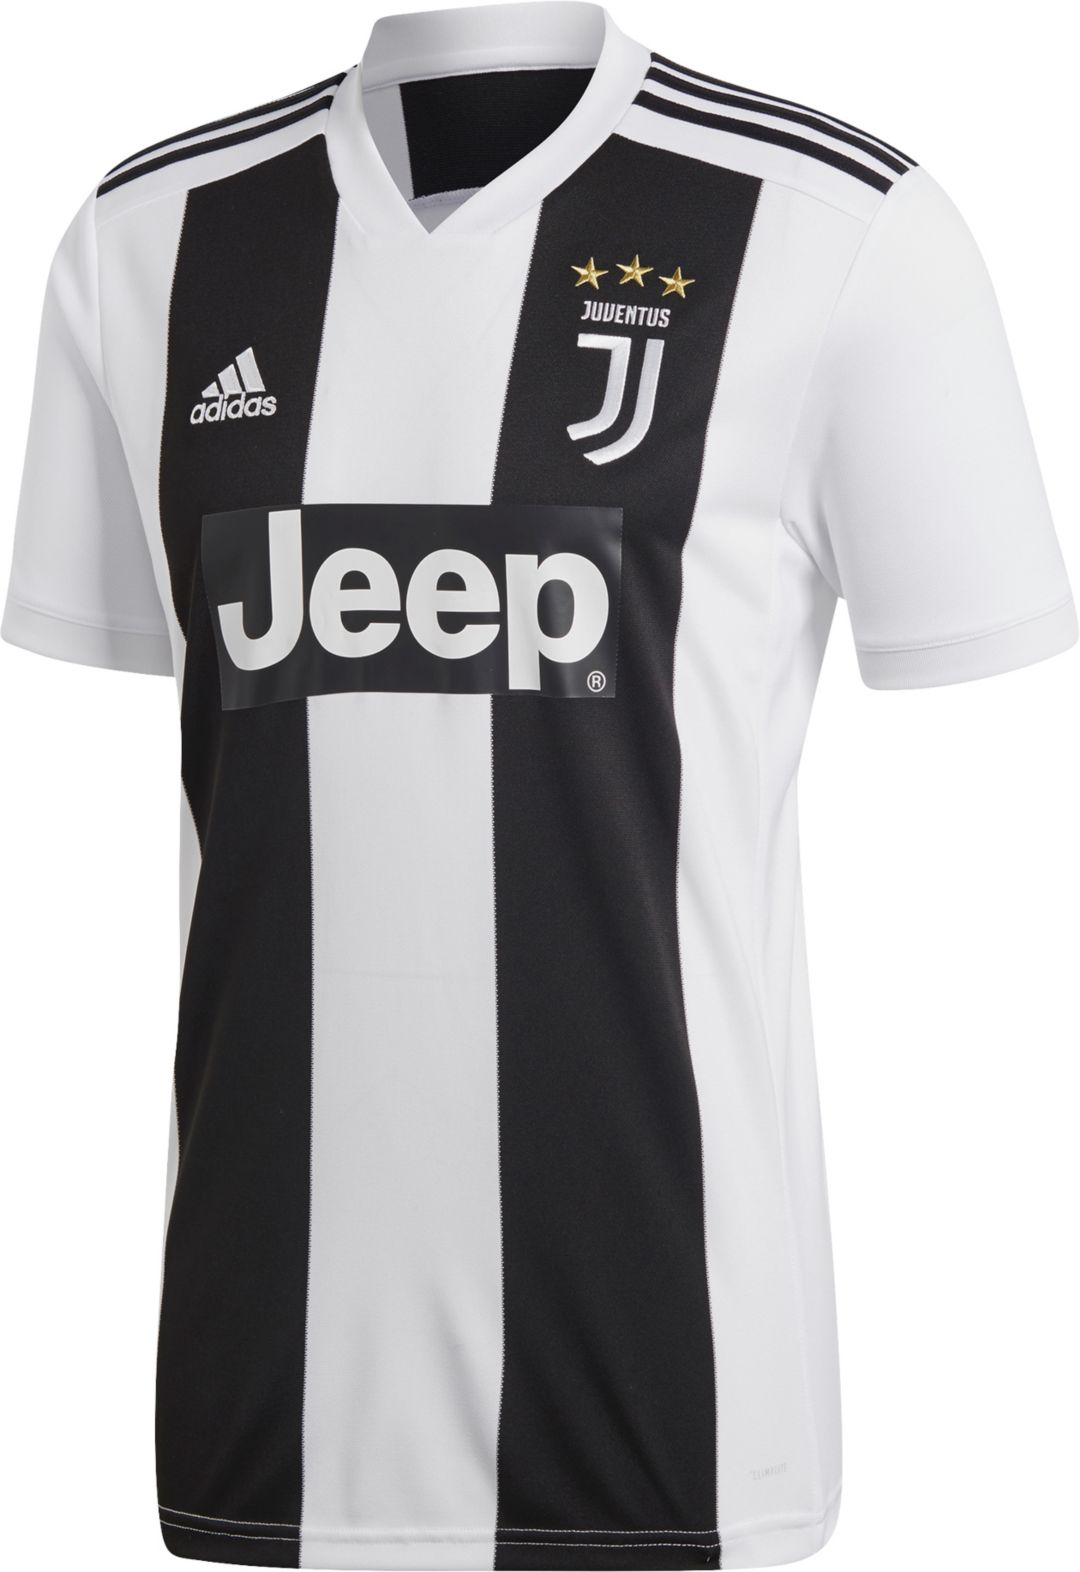 newest 7bd84 d31cd adidas Men's Juventus Cristiano Ronaldo #7 Stadium Home Replica Jersey